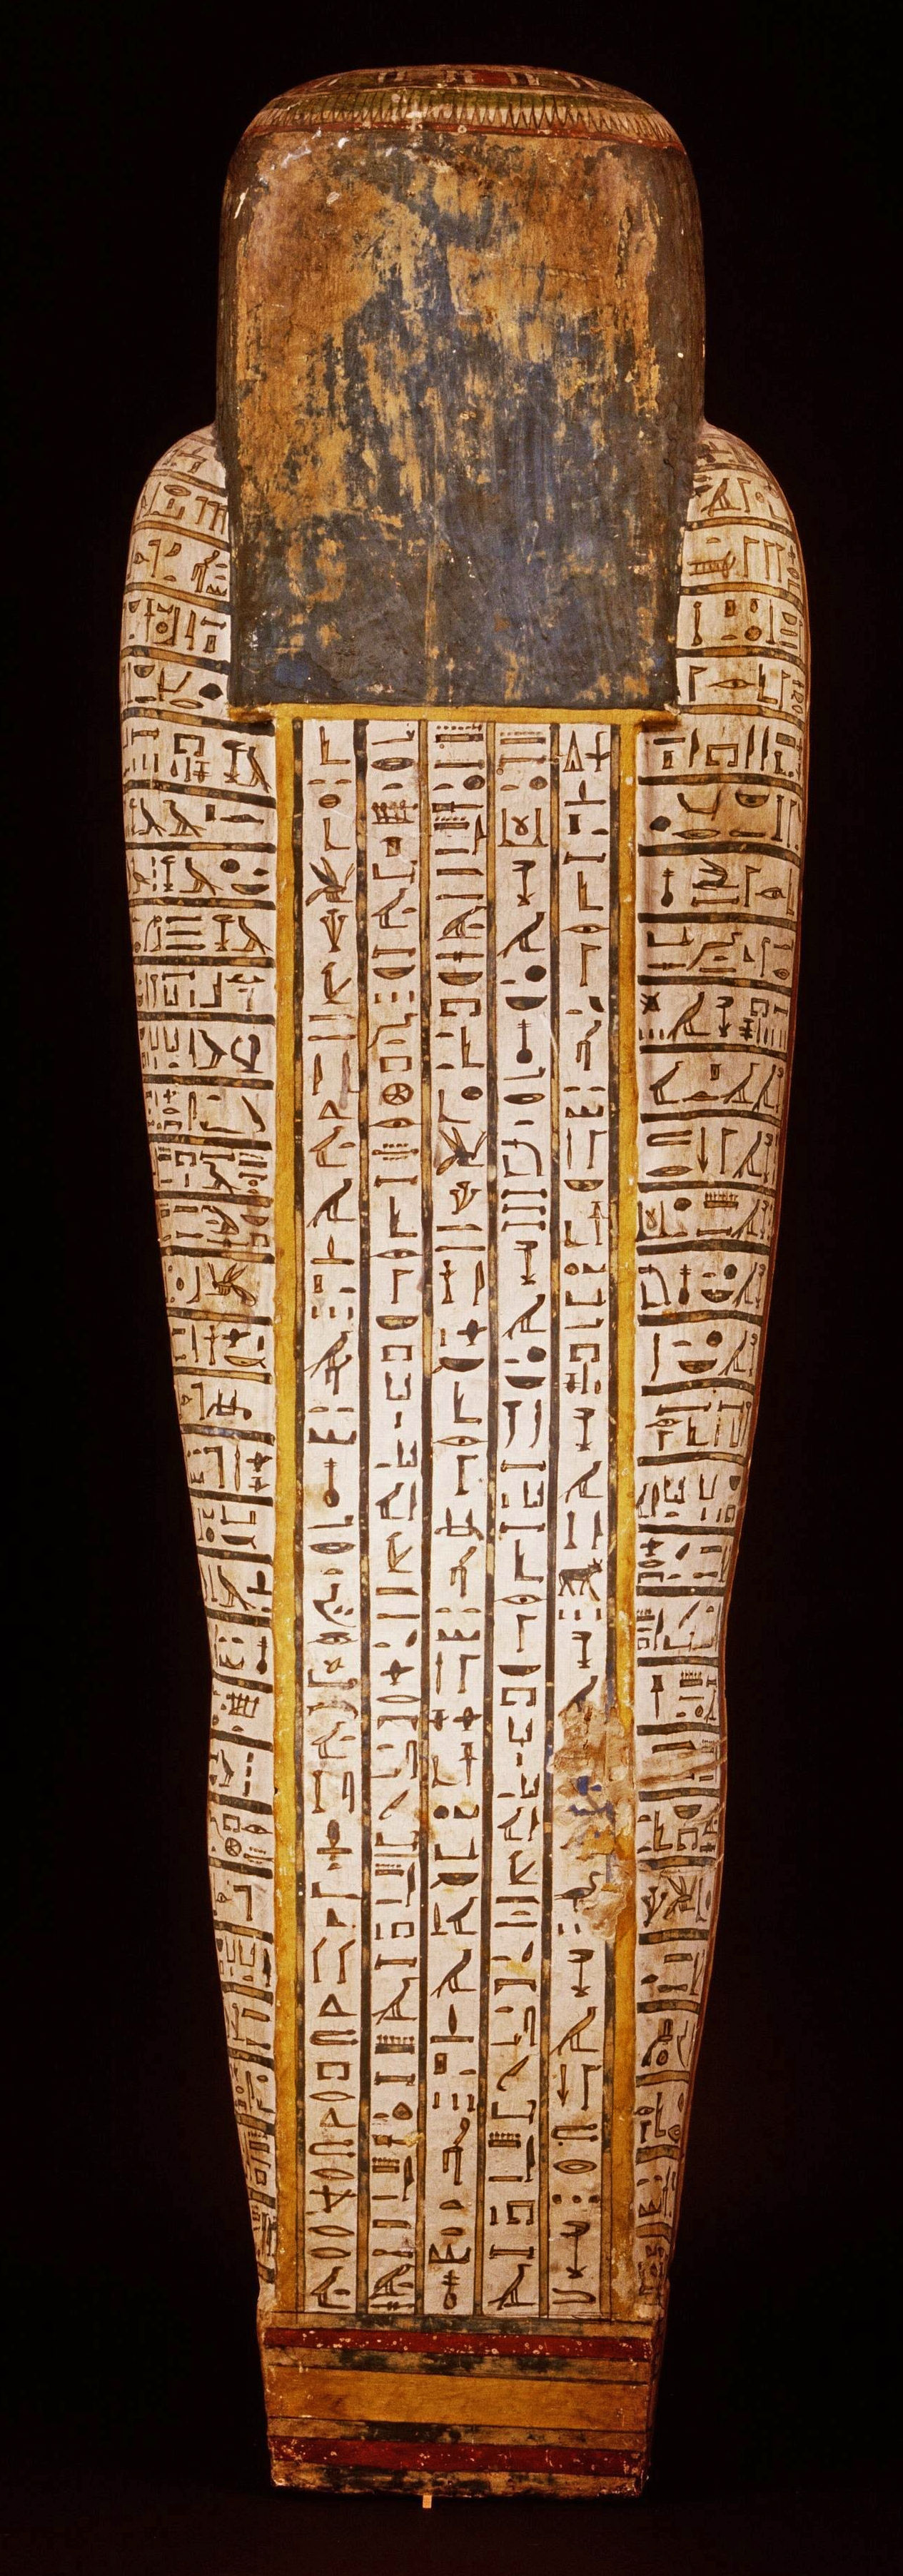 the egyptian coffin after burial 2018-7-20 a sealed black sarcophagus, the largest ever found in the egyptian city of alexandria, was opened thursday amid heavy speculation about whose remains were inside – and just as much lighthearted worry about a curse being released.